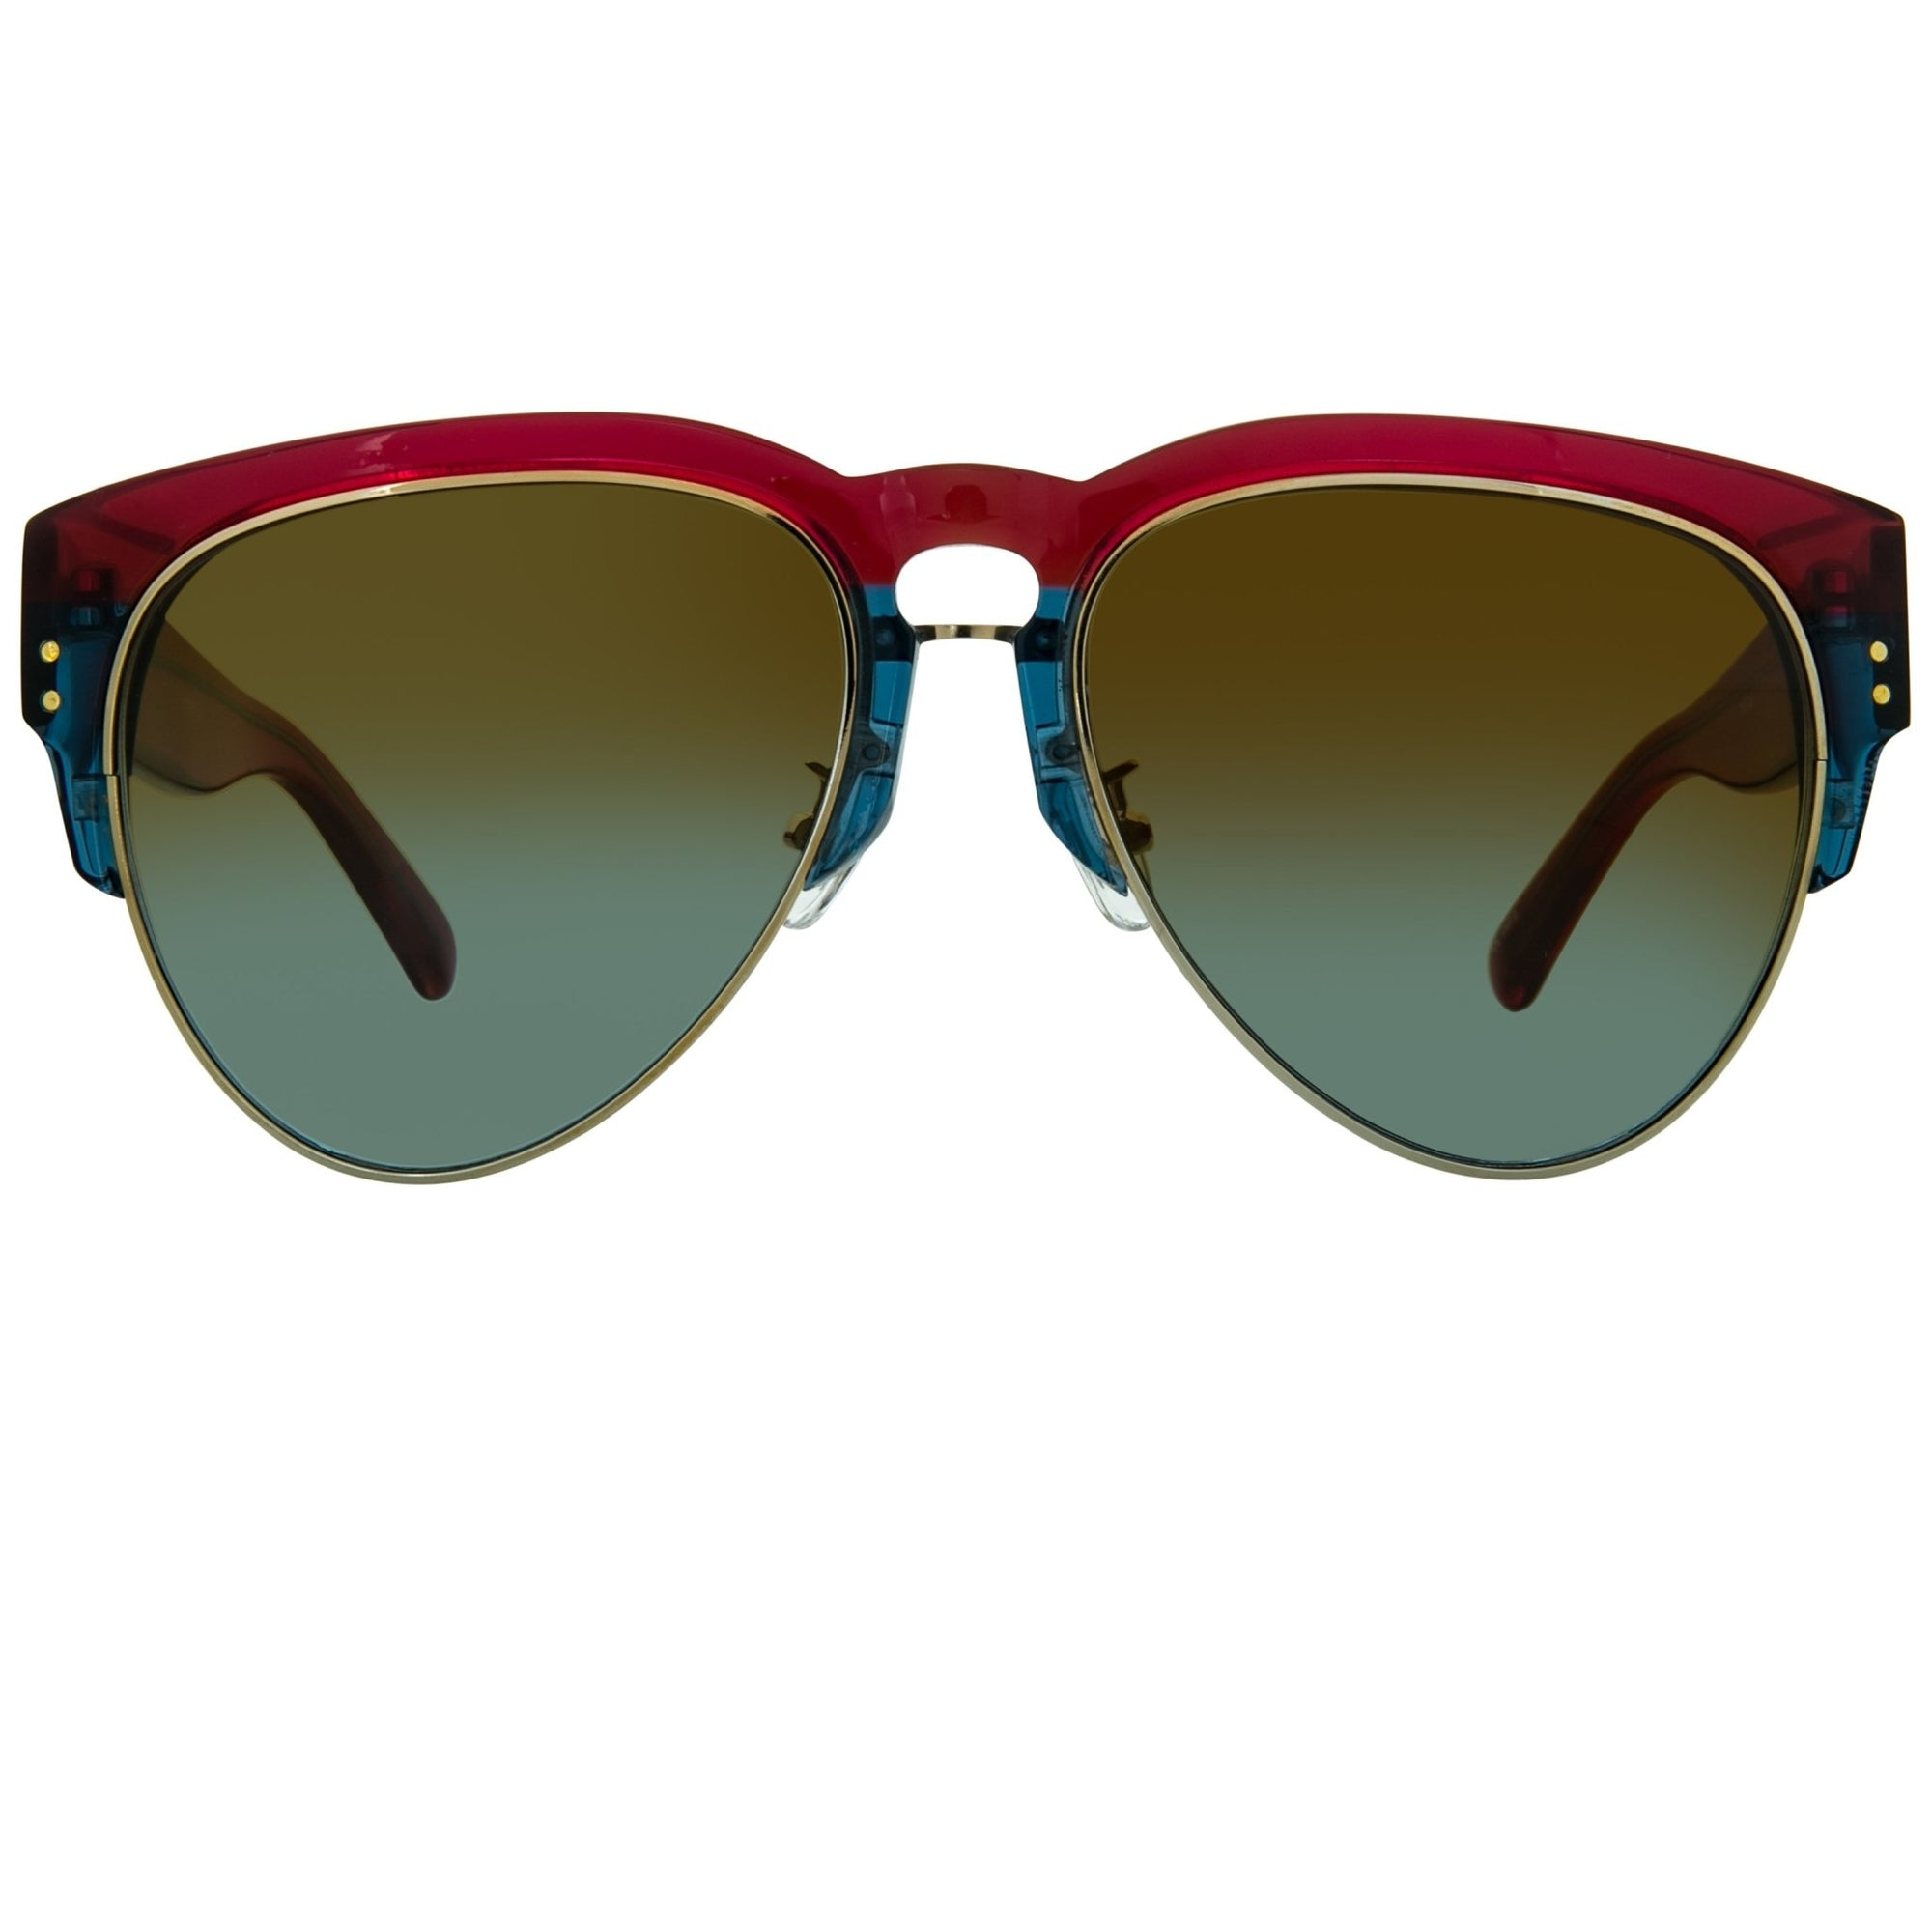 Erdem Women Sunglasses Maroon Navy Light Gold with Brown Blue Graduated Lenses EDM25C1SUN - Watches & Crystals